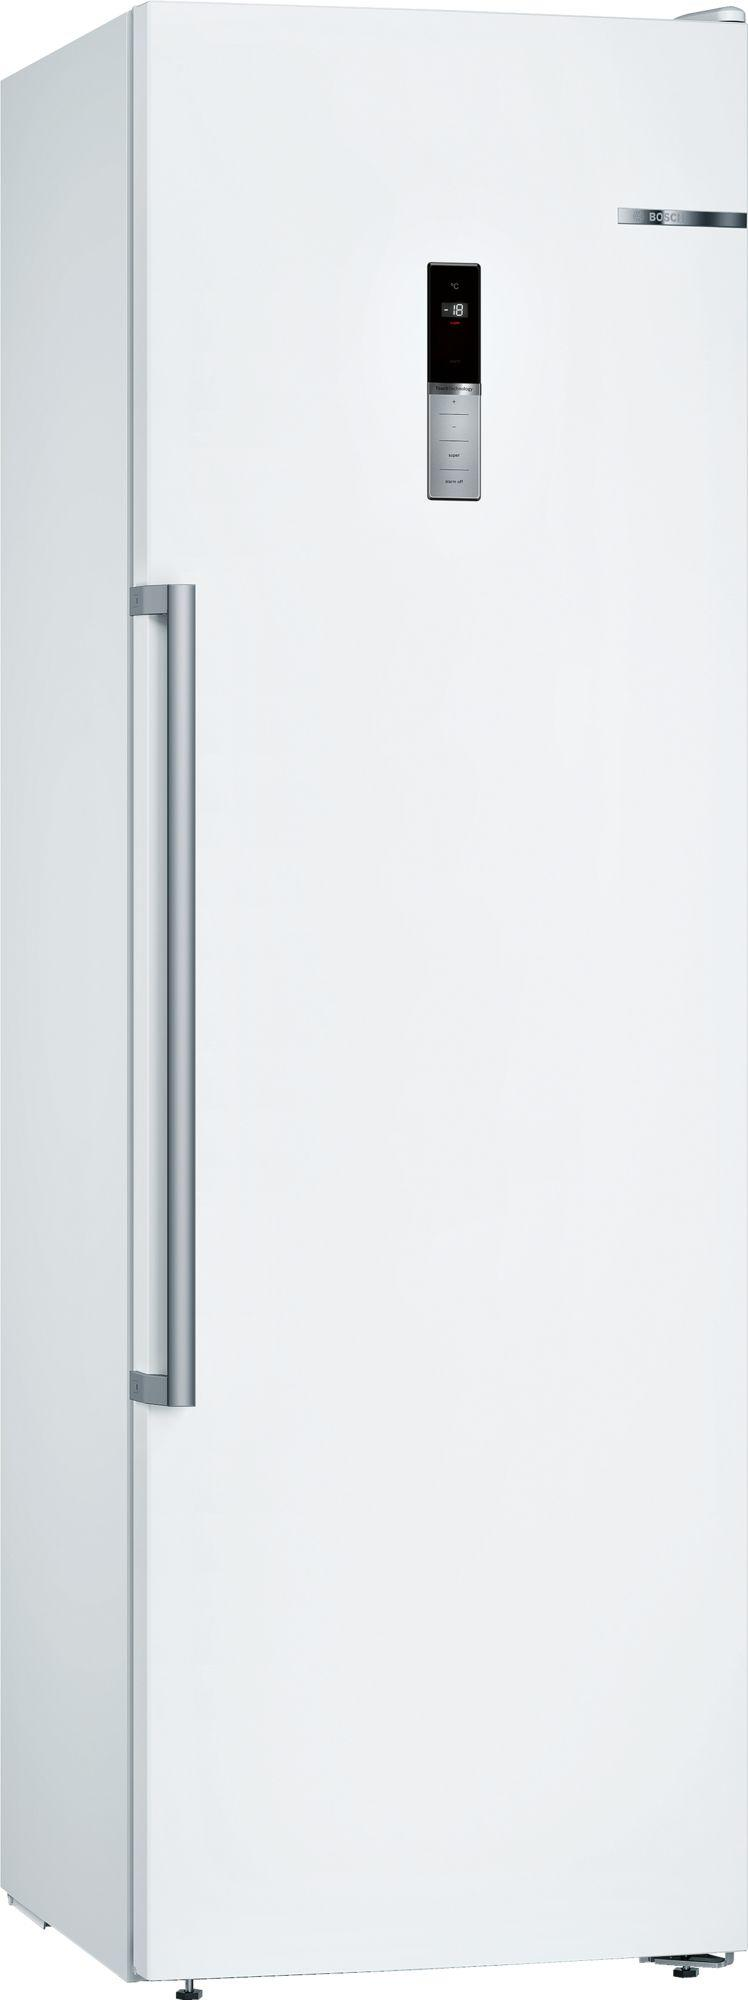 Image of Serie 6 GSN36BWFV 60cm 242 Litre A++ Frost Free Tall Single Door Freezer | White